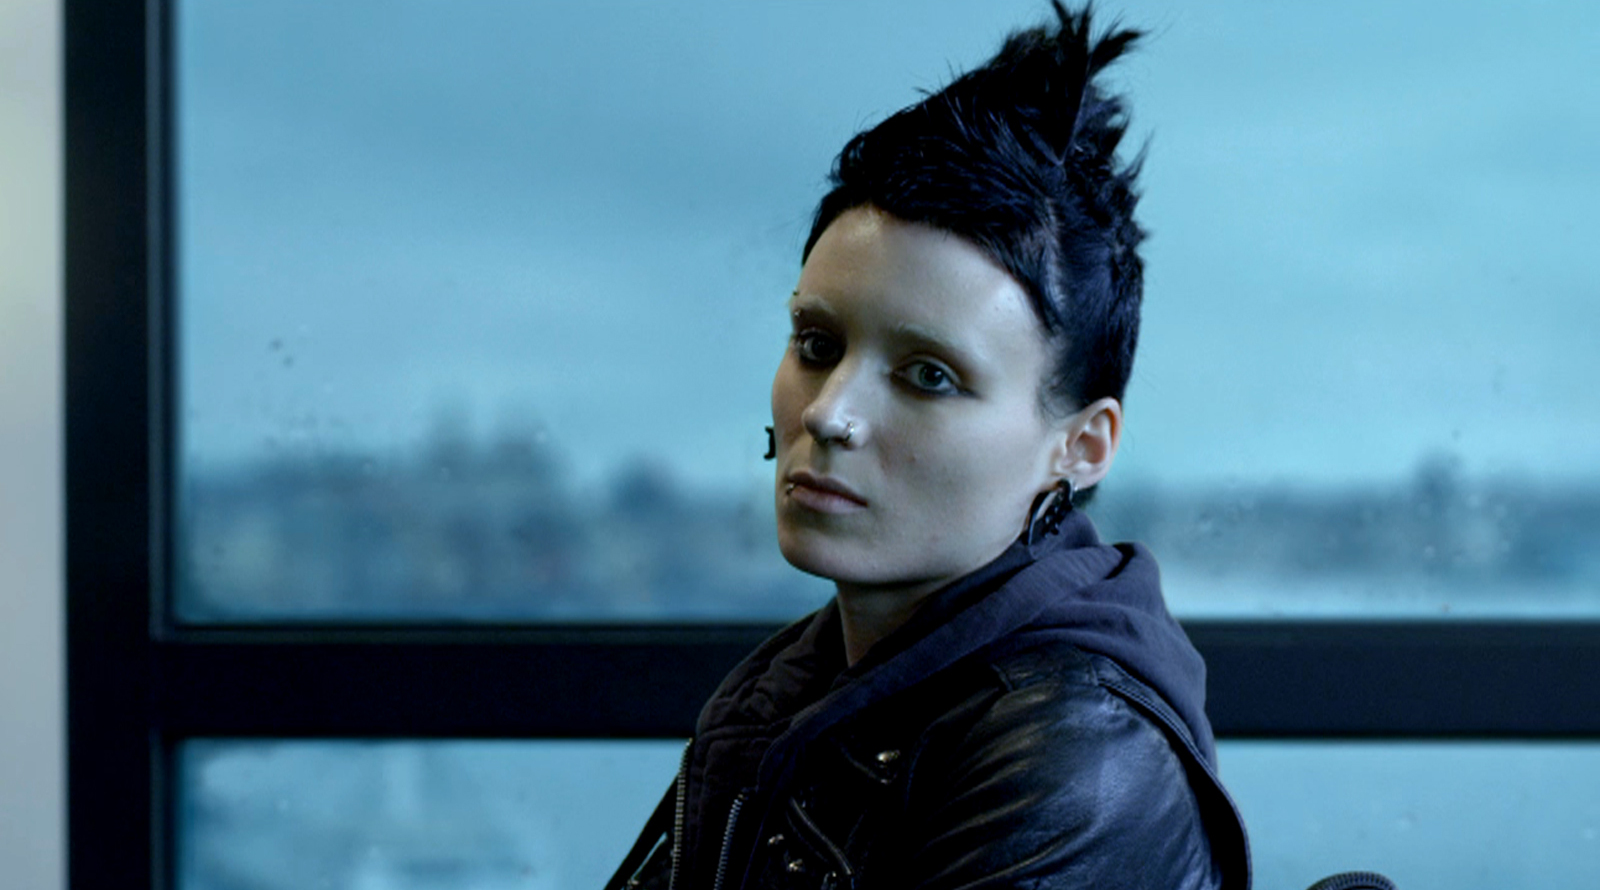 The Girl With the Dragon Tattoo sequel